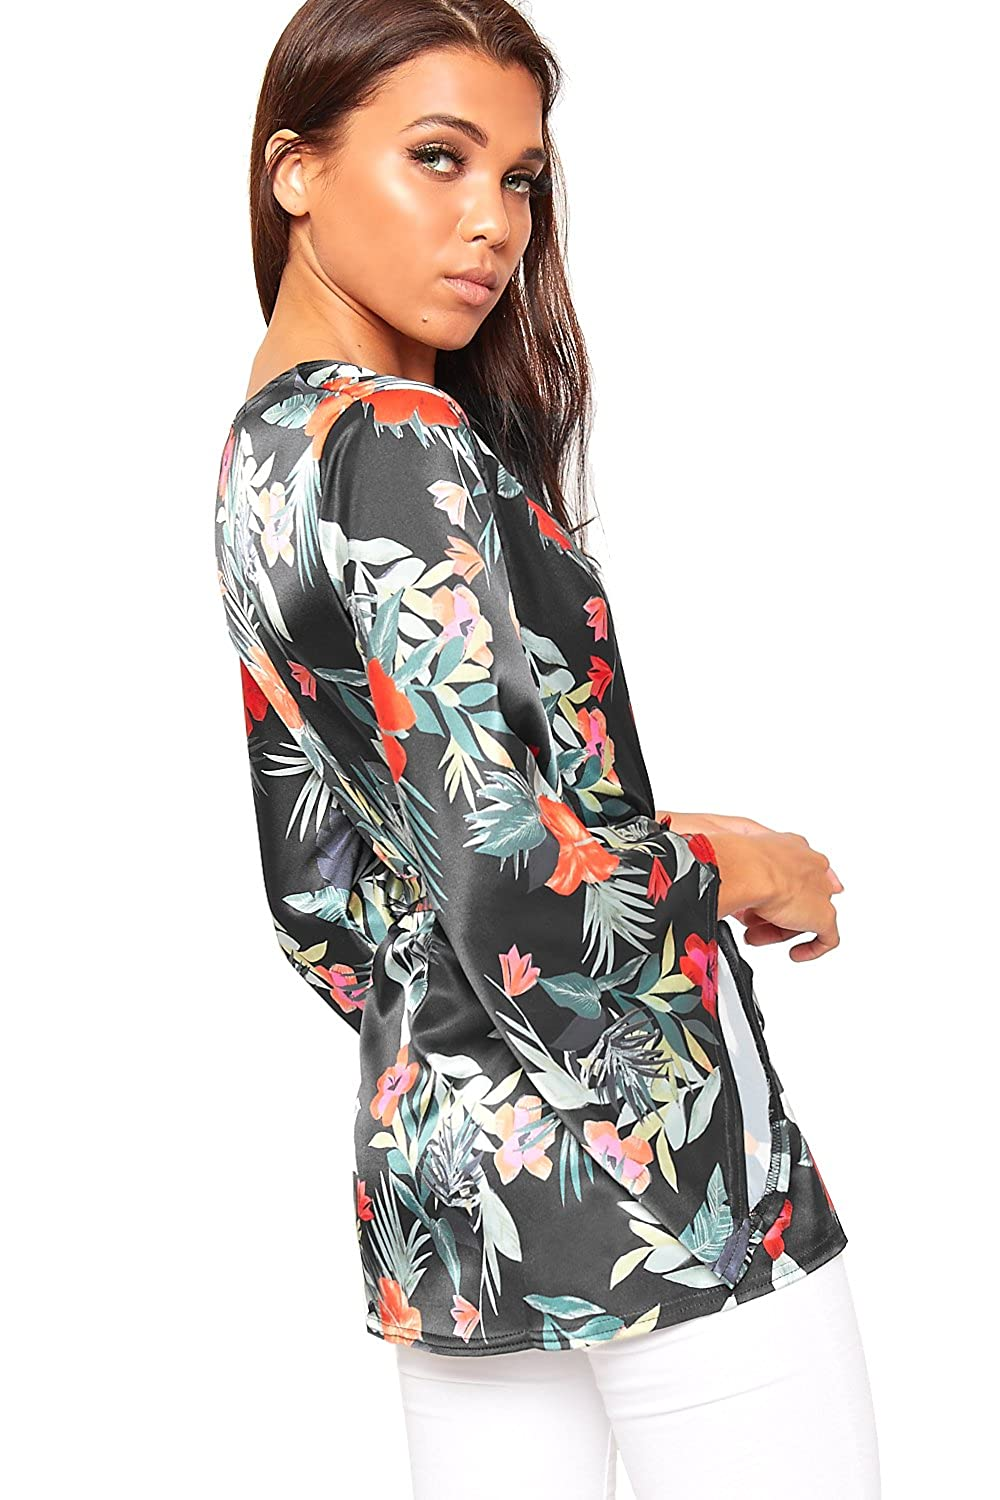 a784fd6ba1 WearAll Women s Floral Print Satin Long Kimono Flare Sleeve Top Ladies  Blazer Open Belted - Black - 12  Amazon.co.uk  Clothing